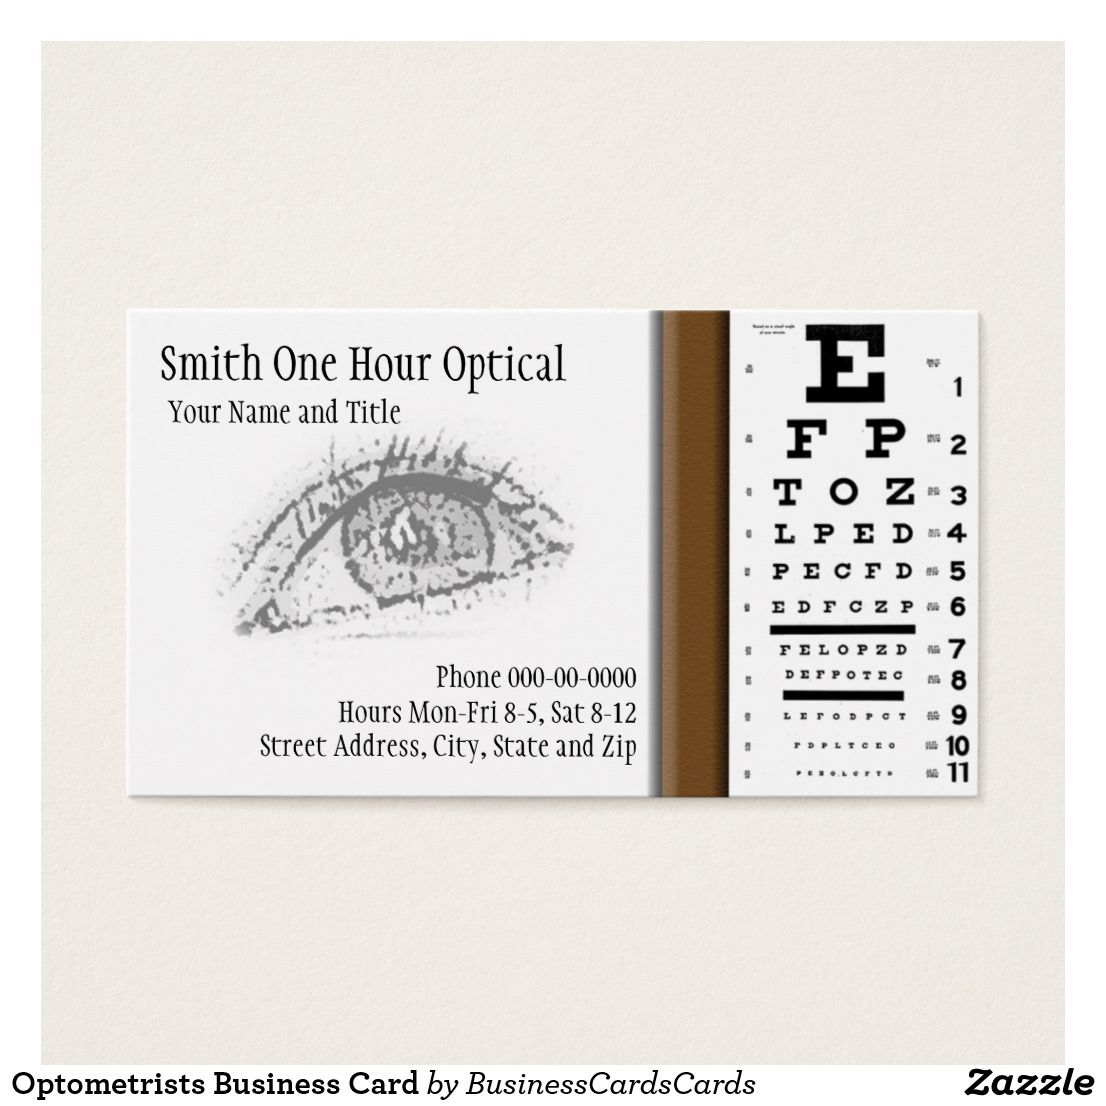 Optometrists Business Card | Business cards and Business